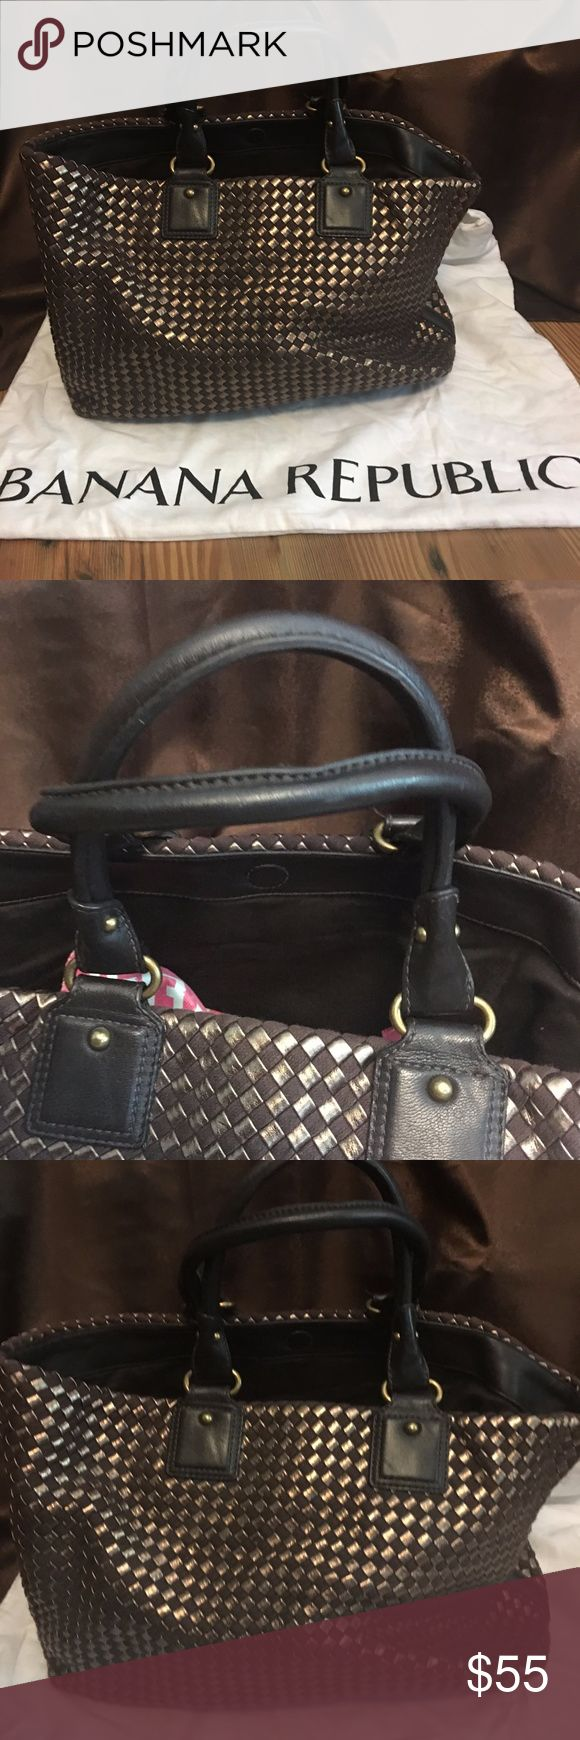 """Banana Republic Tote Woven cotton and polyurethane body with lamb leather trim and handles. Leather base. 11""""w 5""""d 9""""h. Great to carry your iPad and wallet or maybe your pumps for work. Brown and bronze woven.  SMOKE FREE HOME SHIPS SAME DAY Banana Republic Bags Totes"""